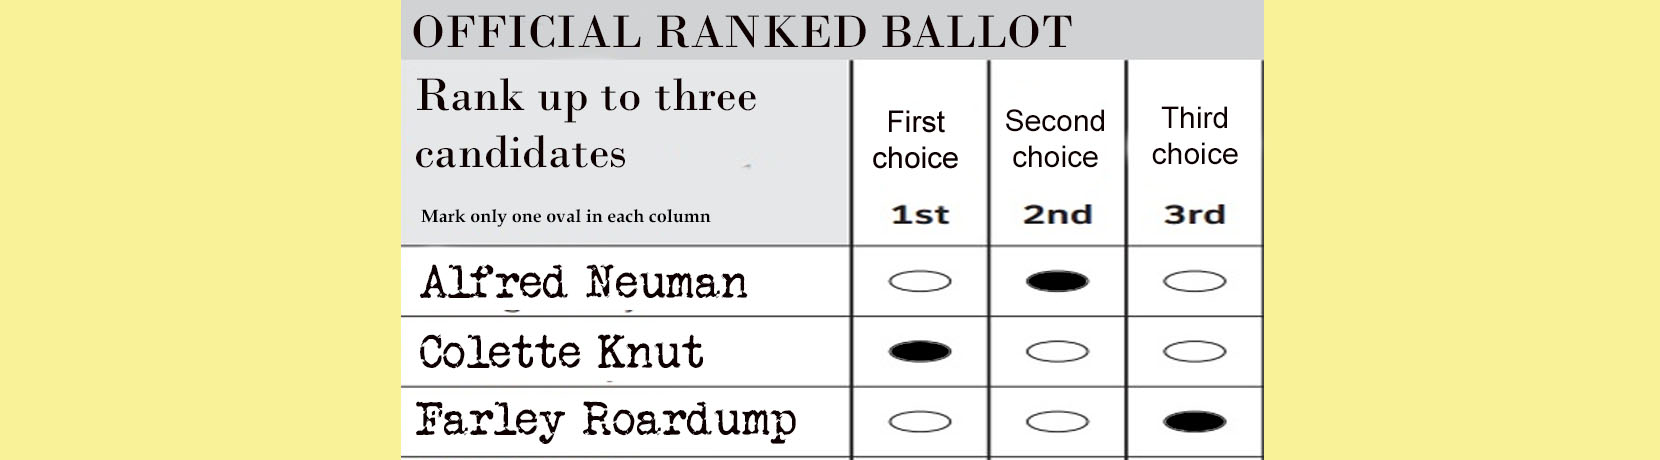 A voting system in which the majority rules